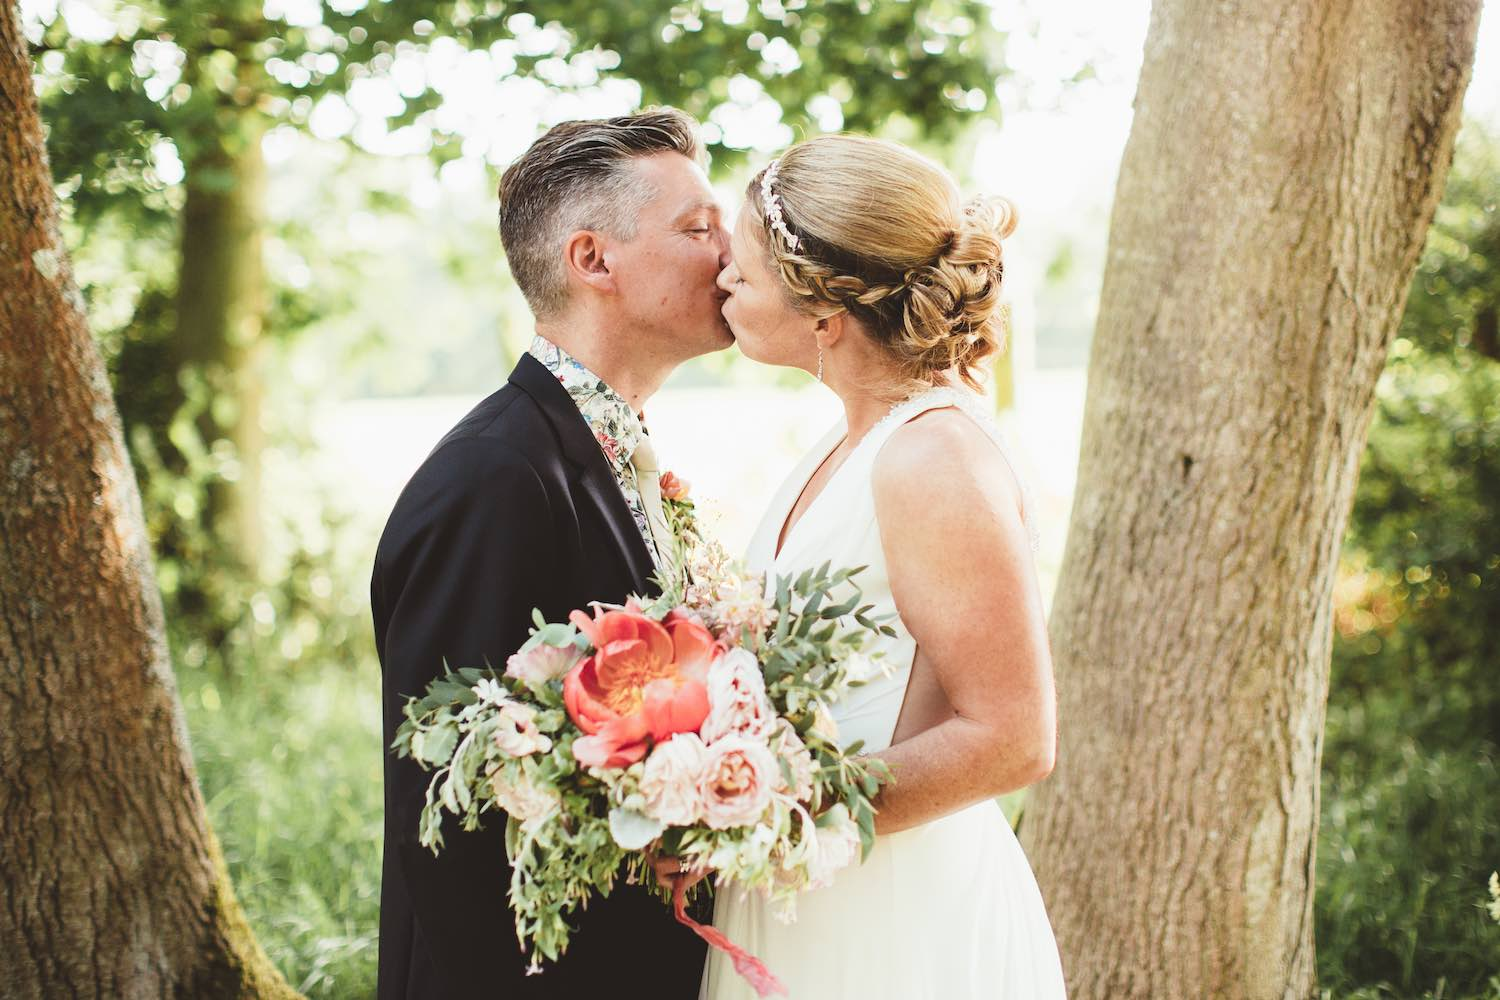 Bride and groom kissing under the tree holding bouquet